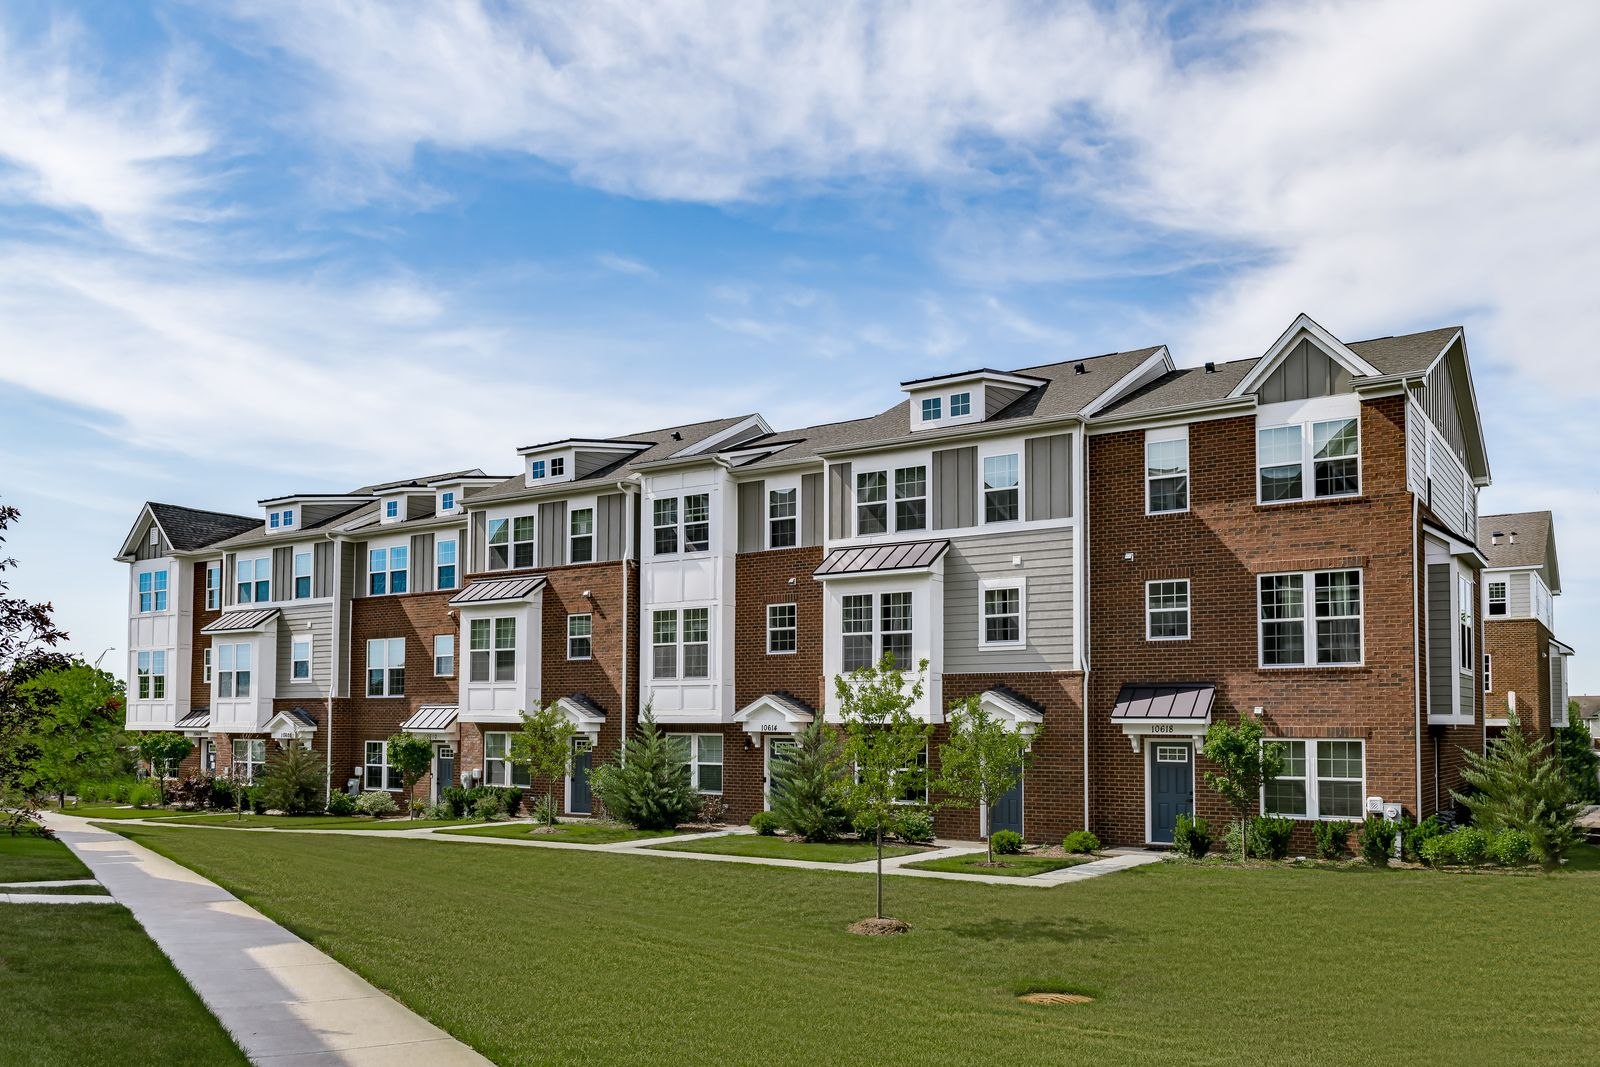 NEW 3 bedroom TOWNHOME IN a Premier ORLAND PARK location:Own a brand new 3 level townhome close to everything you love in Orland Park. Featuring 3 bedrooms w/ walkability to the 153 St. Metra Station and Centennial Park!Click here to schedule your visit!